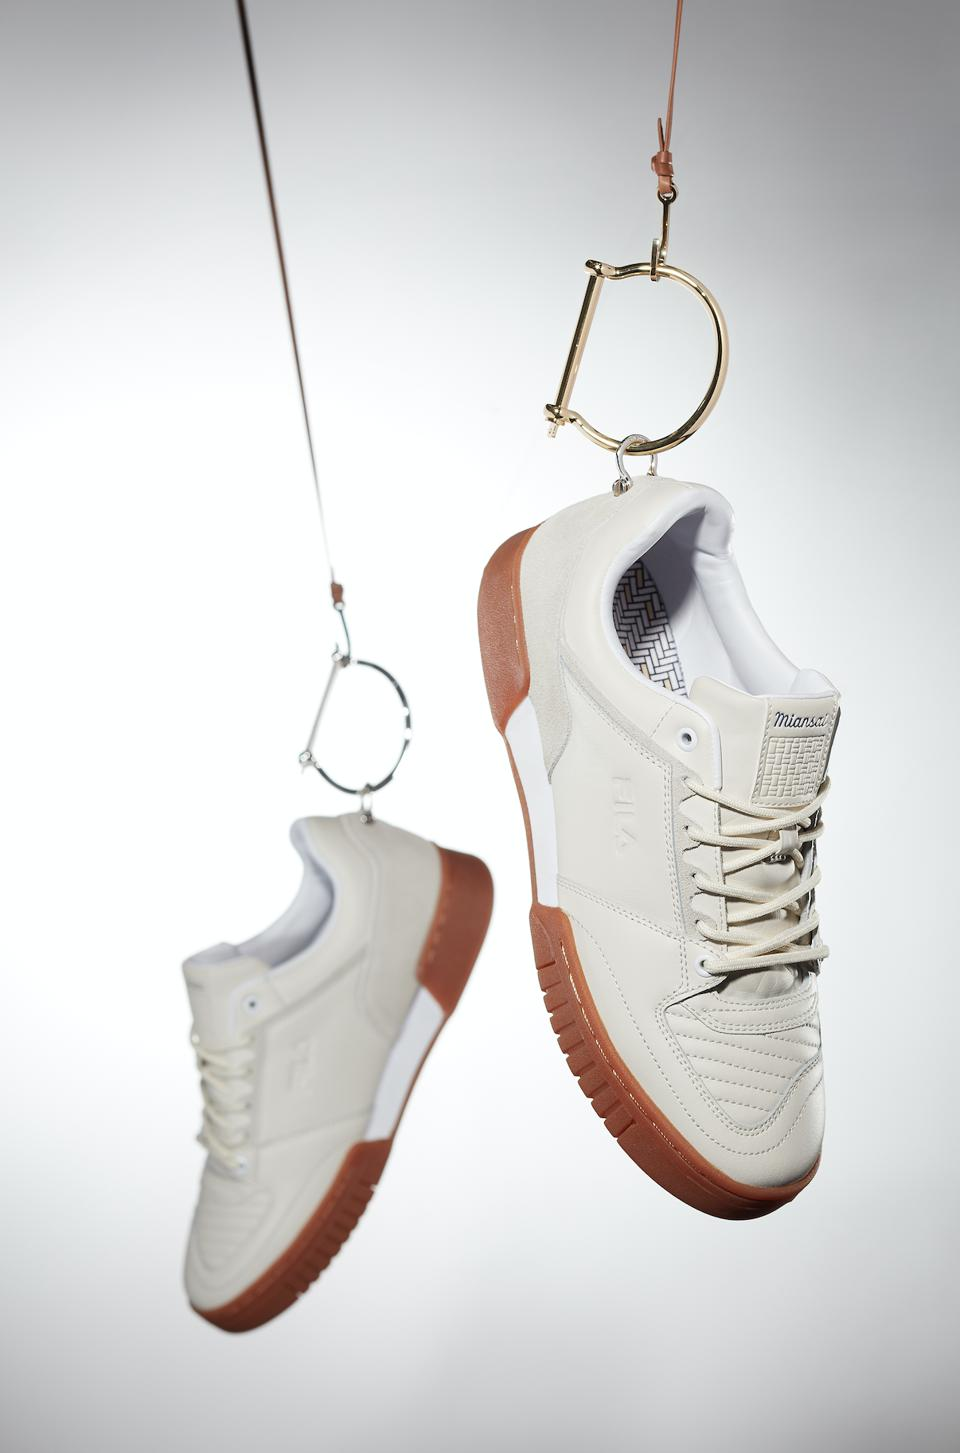 Style Duality: FILA's First Collaboration With A Jewelry Brand